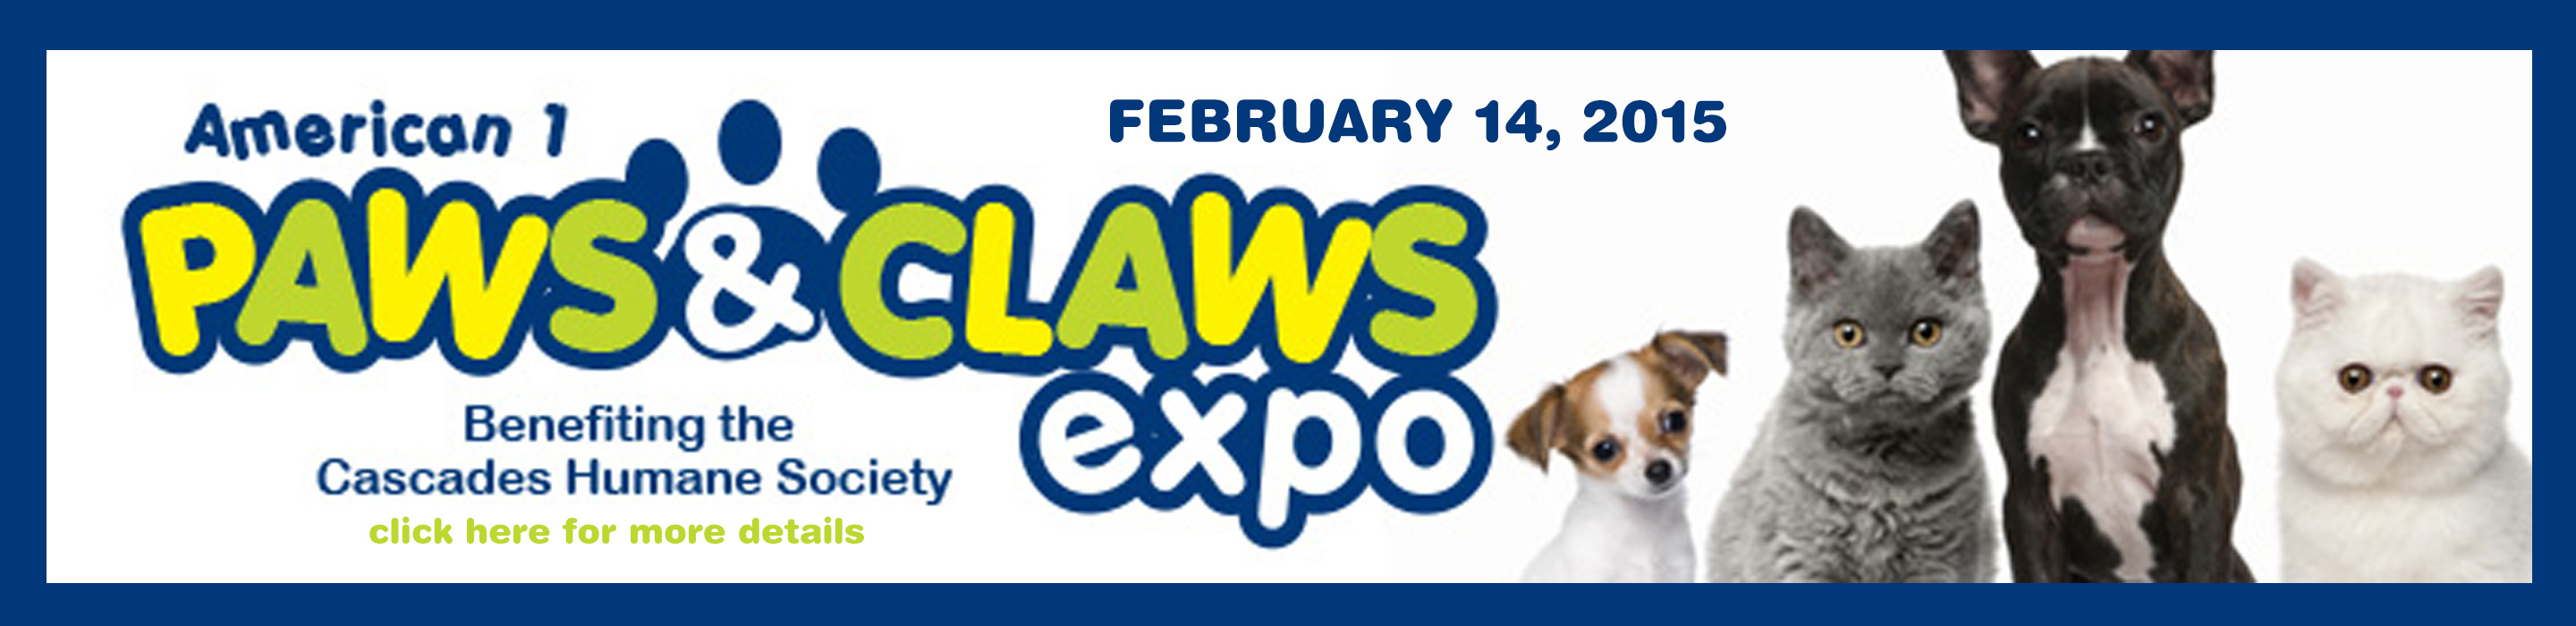 Paws & Claws Expo